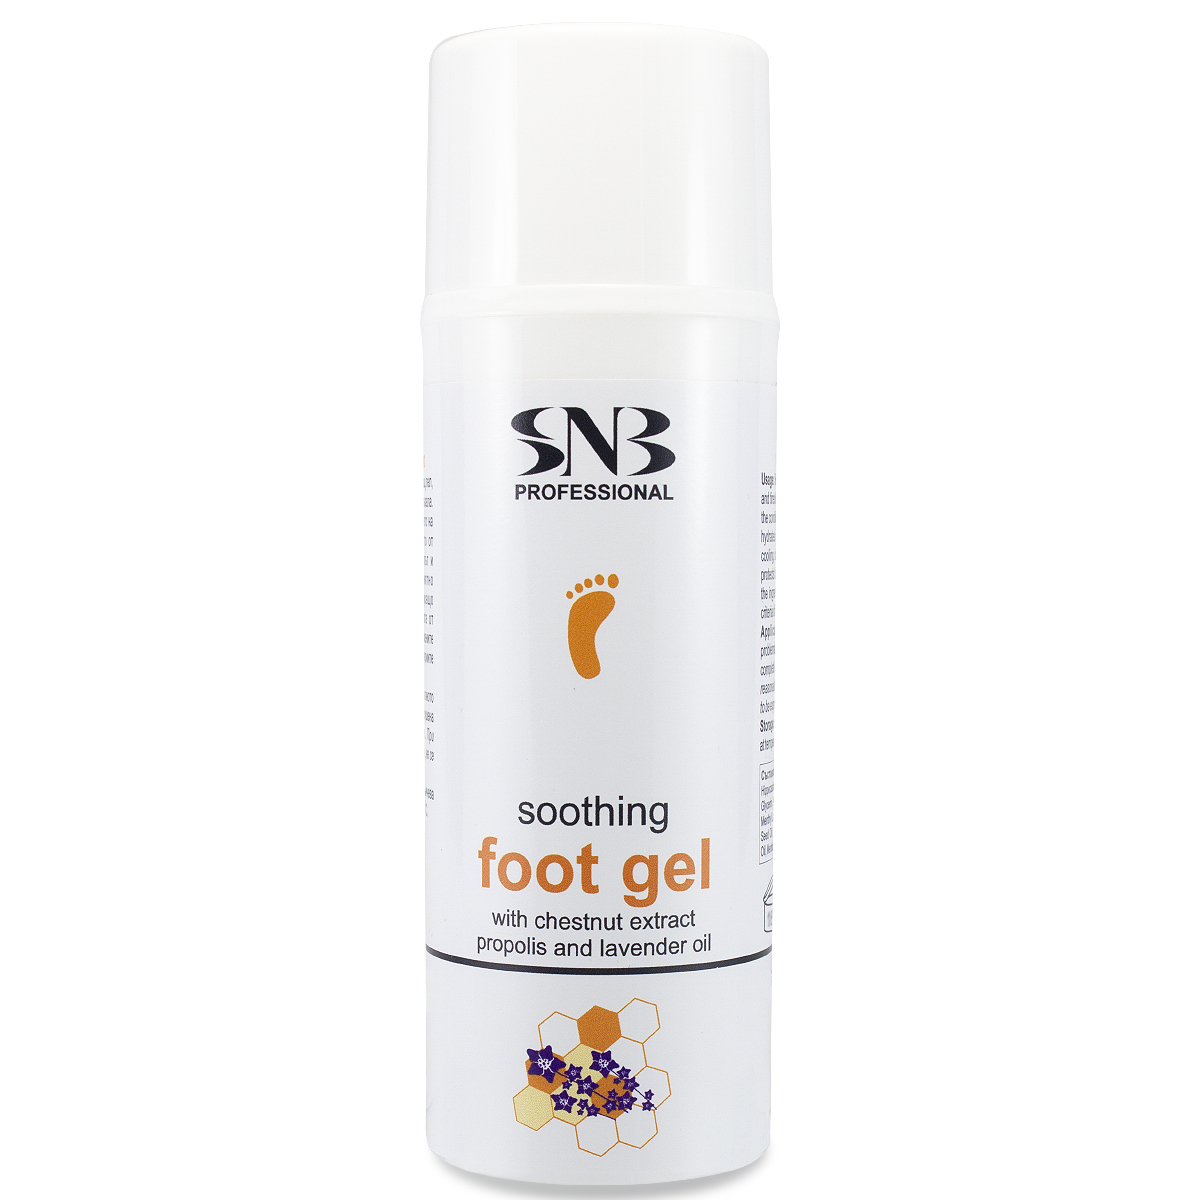 Soothing Foot Gel with Chestnut extract, Propolis and Lavender oil 100 ml